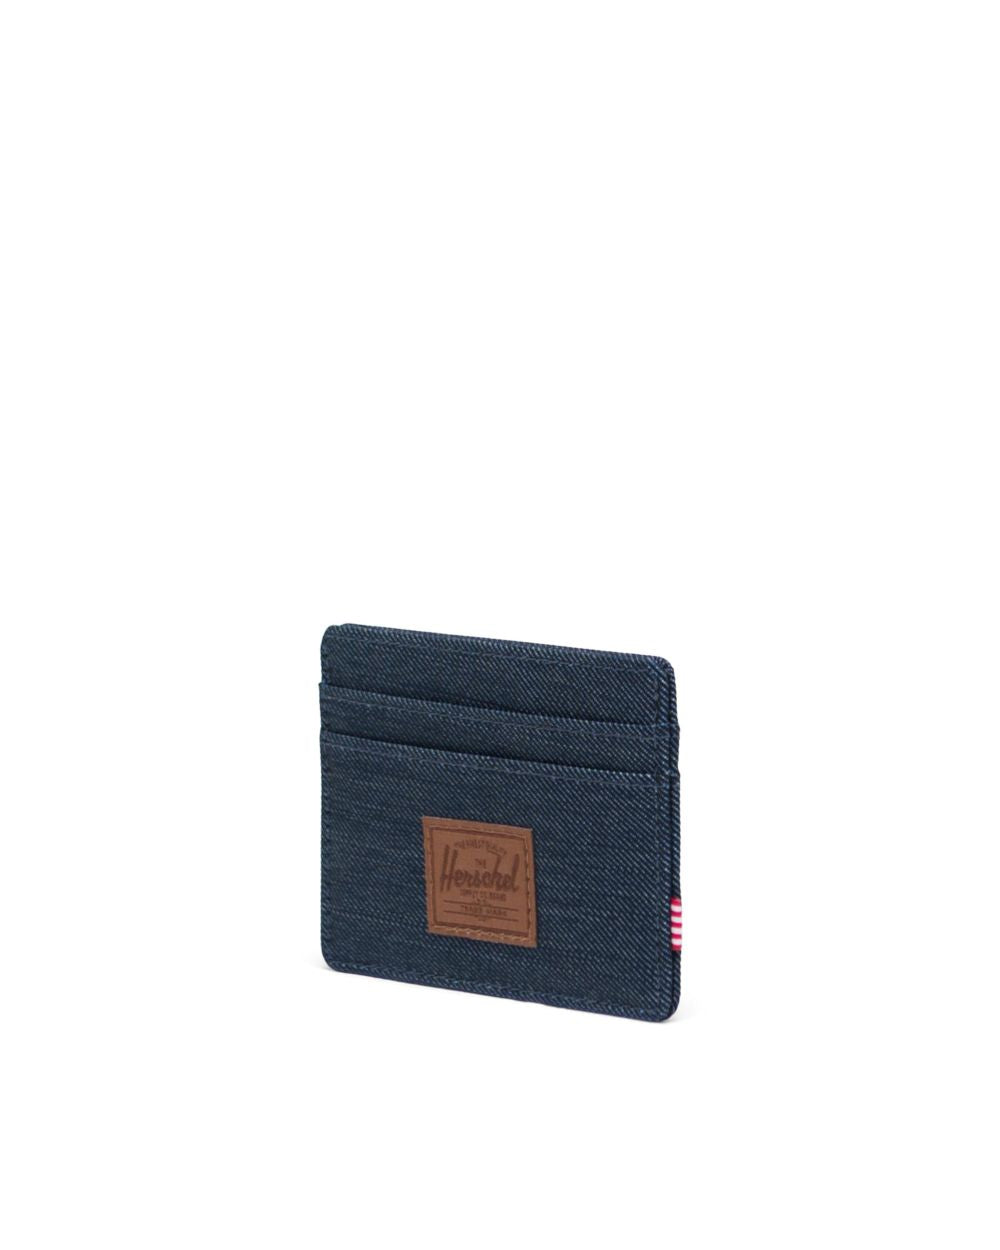 HERSCHEL WALLETS CHARLIE WALLET - INDIGO DENIM CROSSHATCH